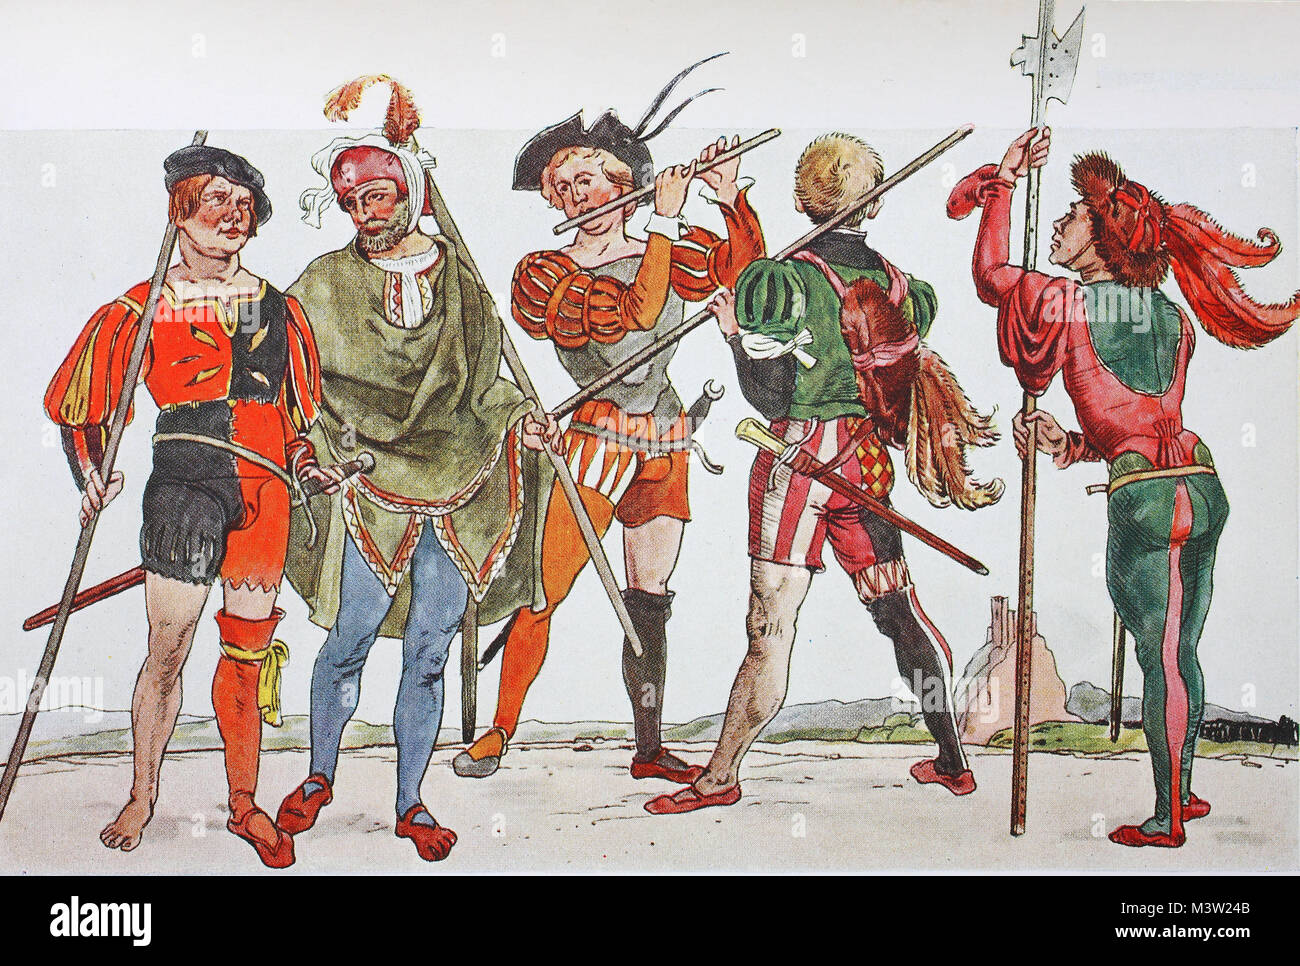 Clothing, fashion of the Landsknechts in Germany around 1500-1540, the slot uniform of the Landsknechts, the slot - Stock Image